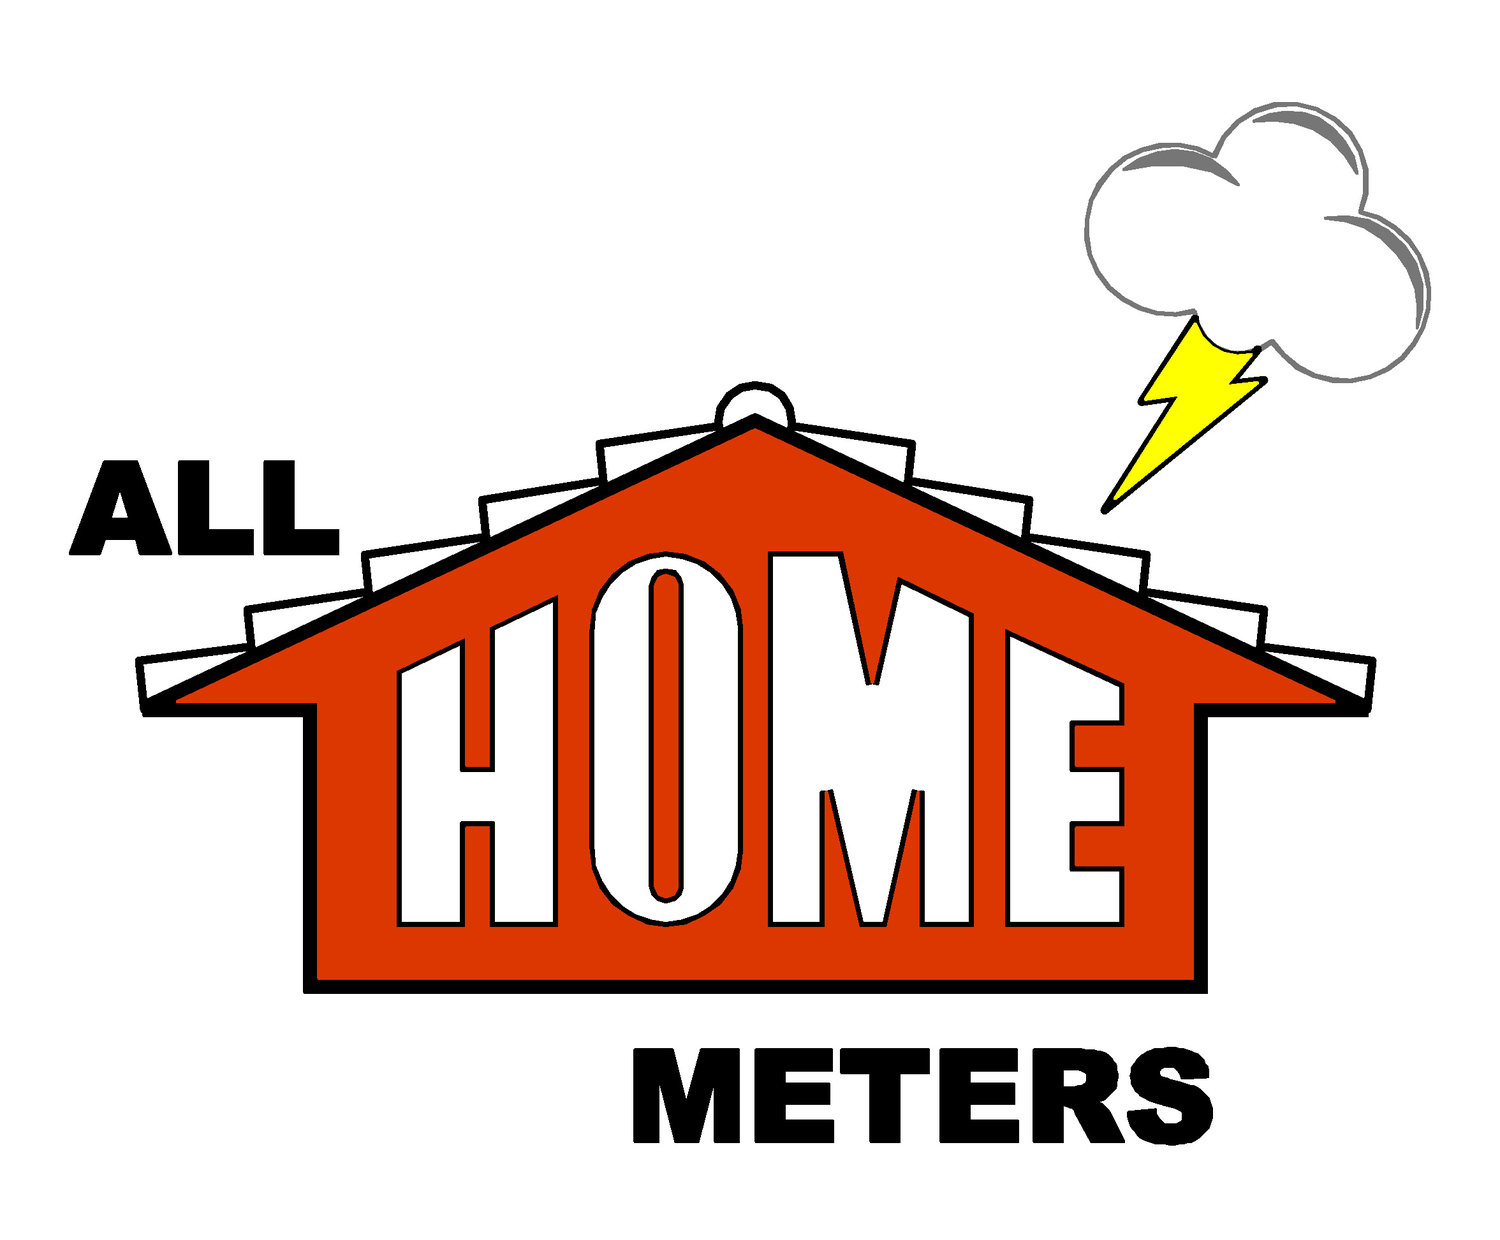 ALL HOME METERS